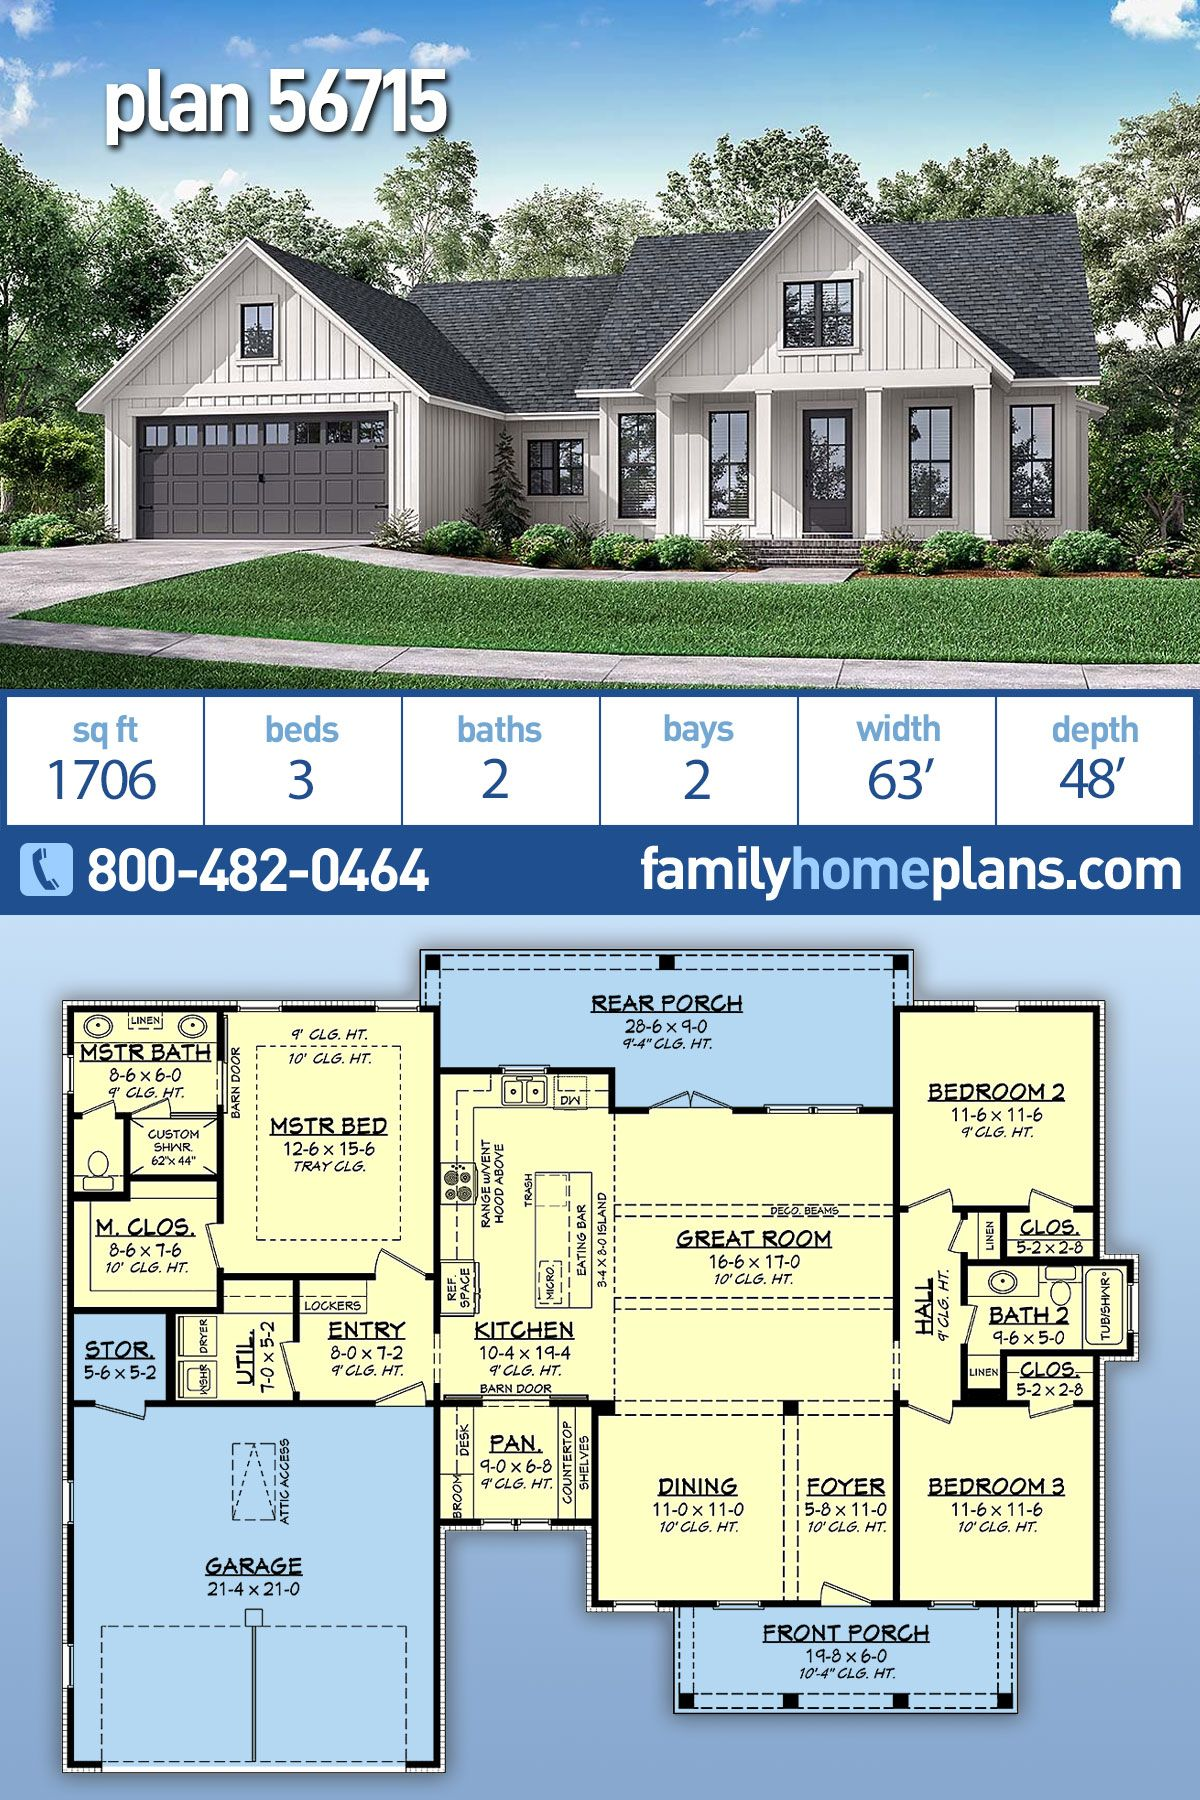 Traditional Style House Plan 56715 With 3 Bed 2 Bath 2 Car Garage Country House Plans House Plans Farmhouse House Layout Plans